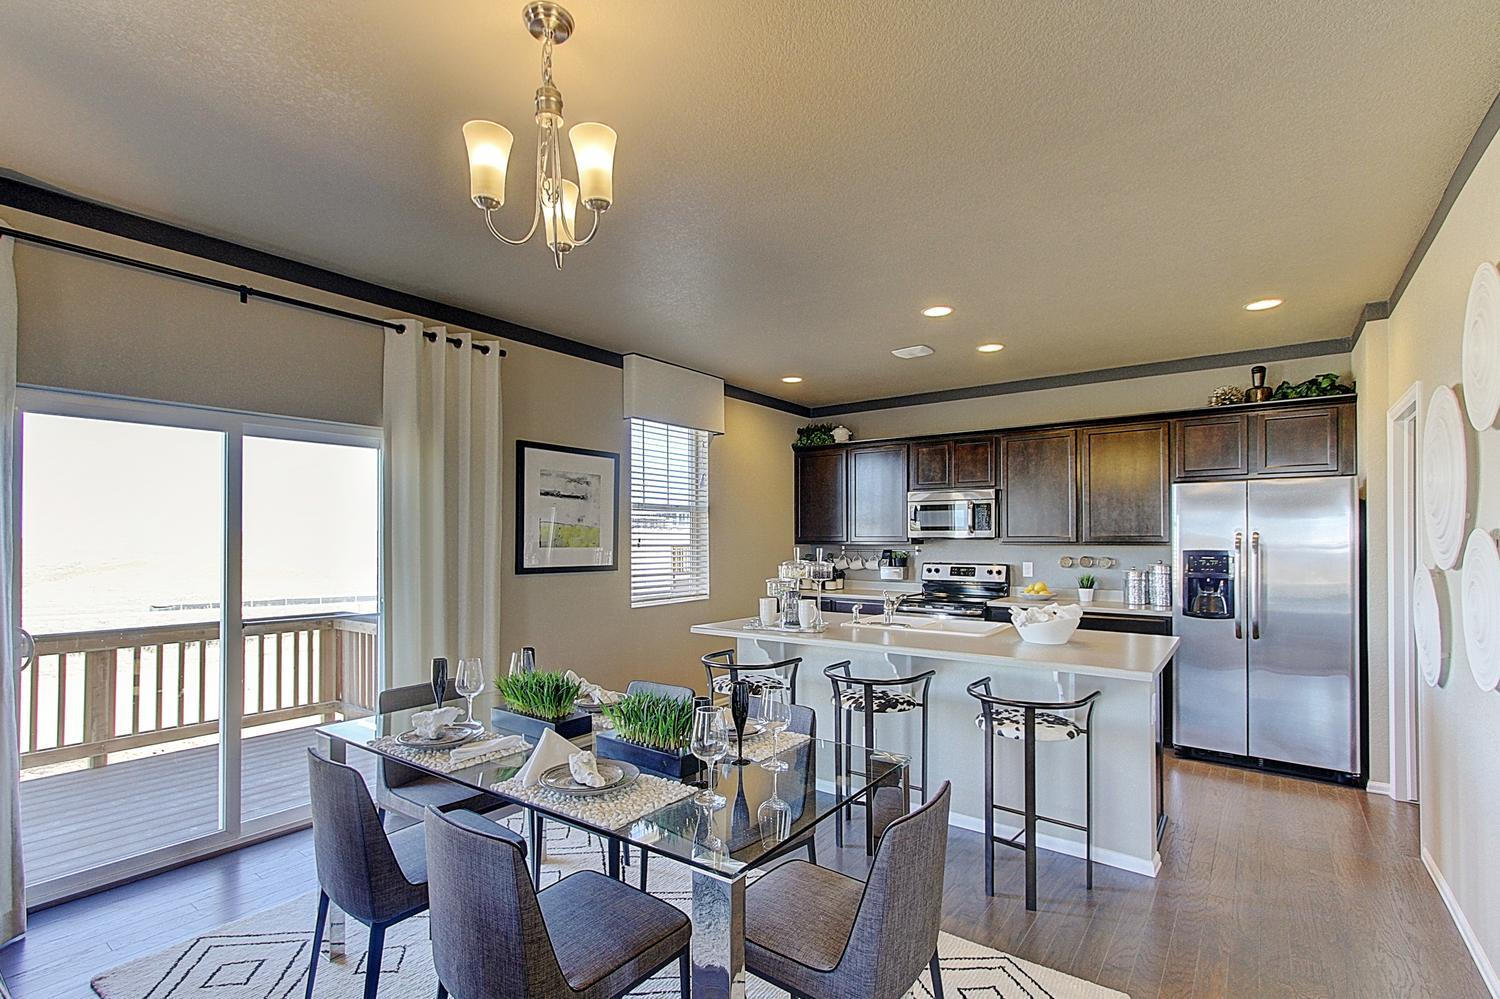 Kitchen featured in the GABLE By D.R. Horton in Denver, CO